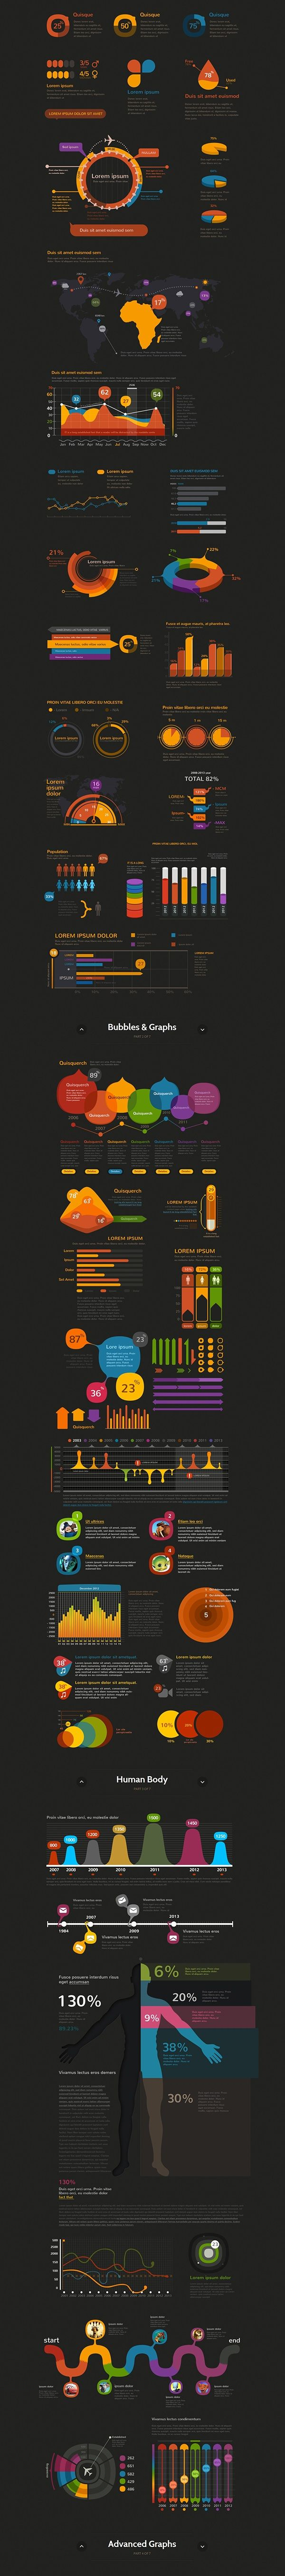 Crooked Stats Infographic Kit on Behance                                                                                                                                                                                 More